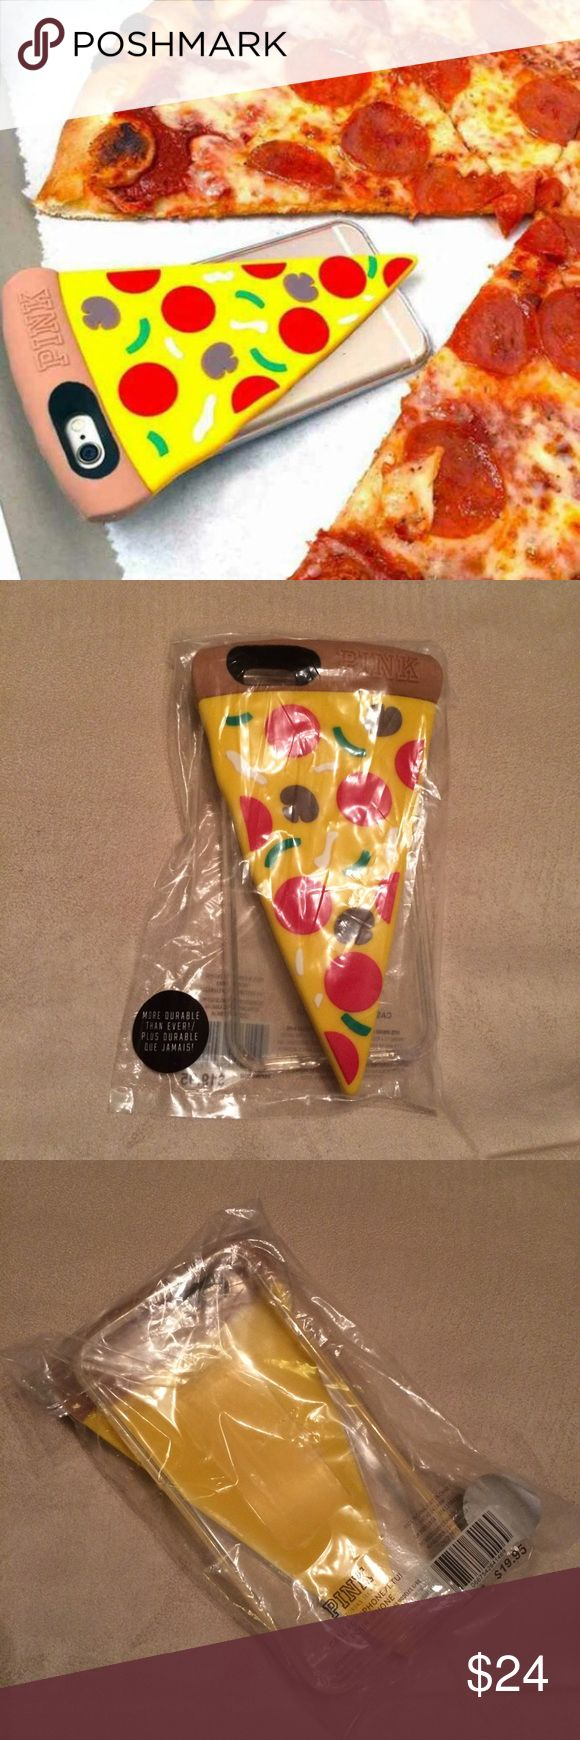 PINK pizza iphone case PINK iphone case  *NEW in case * extremely rare /limited qty * IPhone 6/6S  * PINK nation #PINK nation phone case # PINK phone case #PINK pizza phone case #pizza phone case, mirror selfie  PRICE is pretty firm PINK Victoria's Secret Other